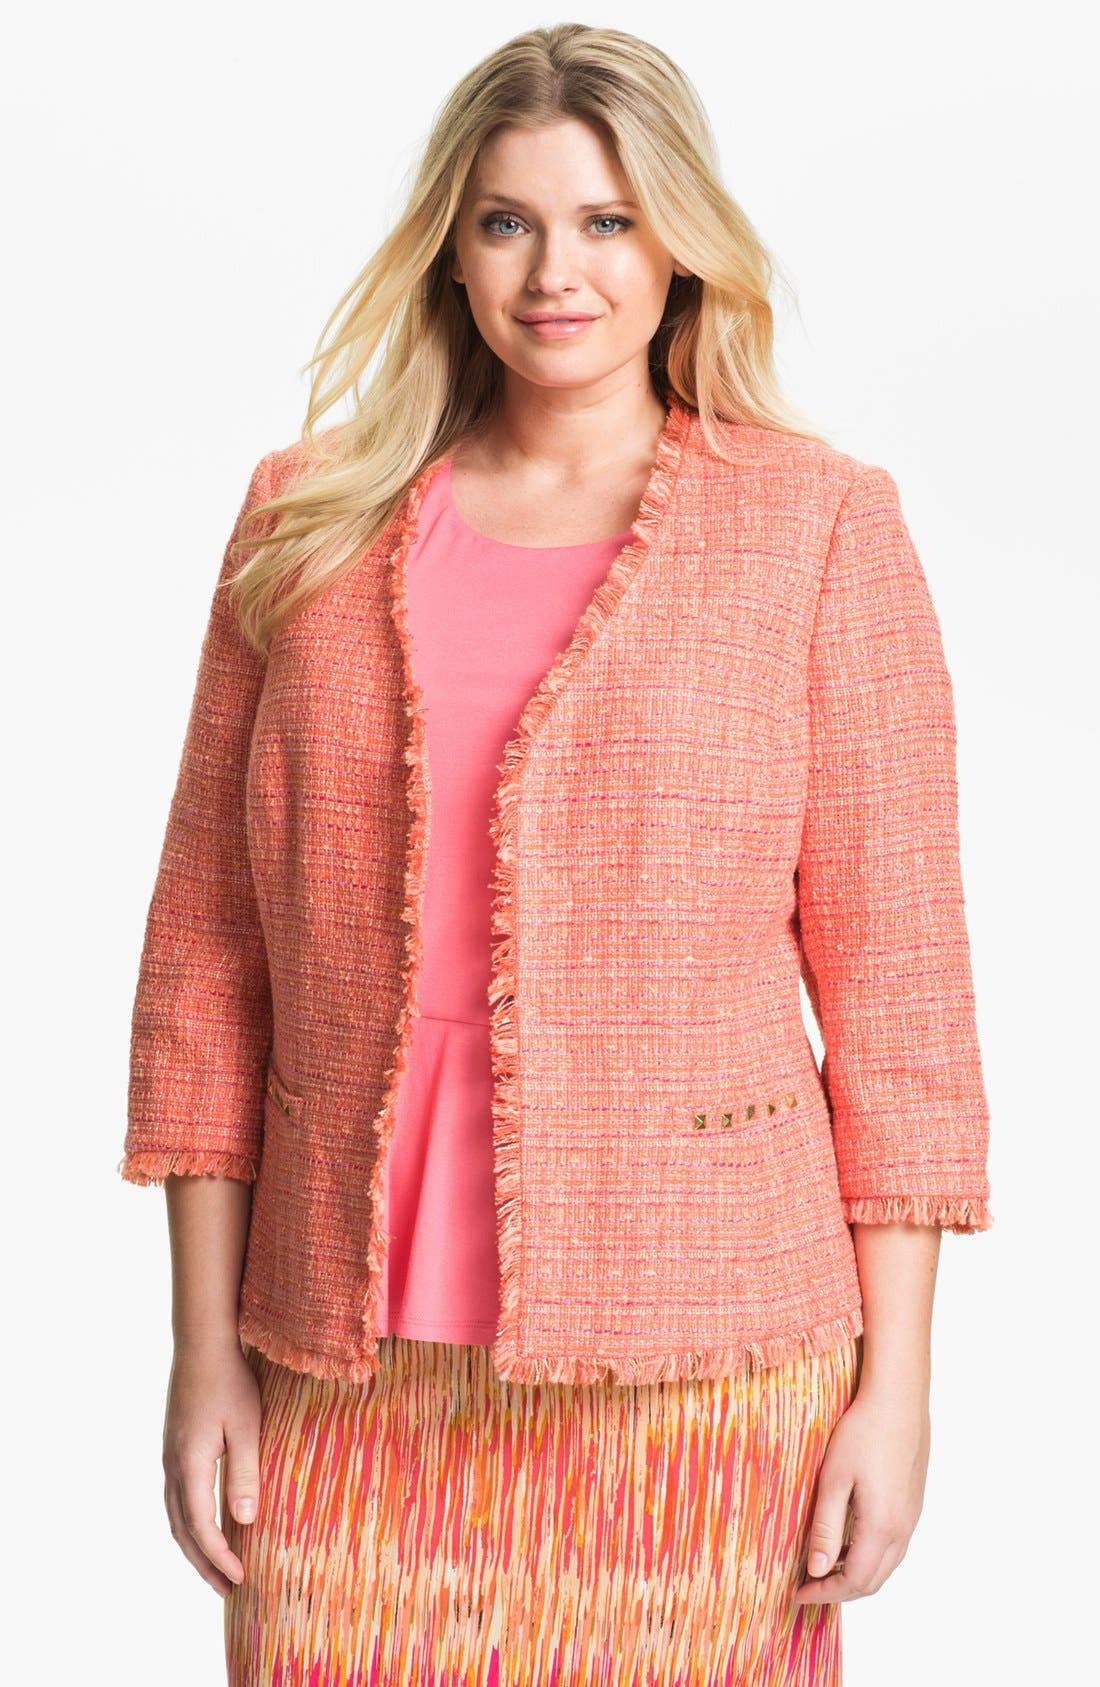 Alternate Image 1 Selected - Vince Camuto Tweed Jacket (Plus Size)